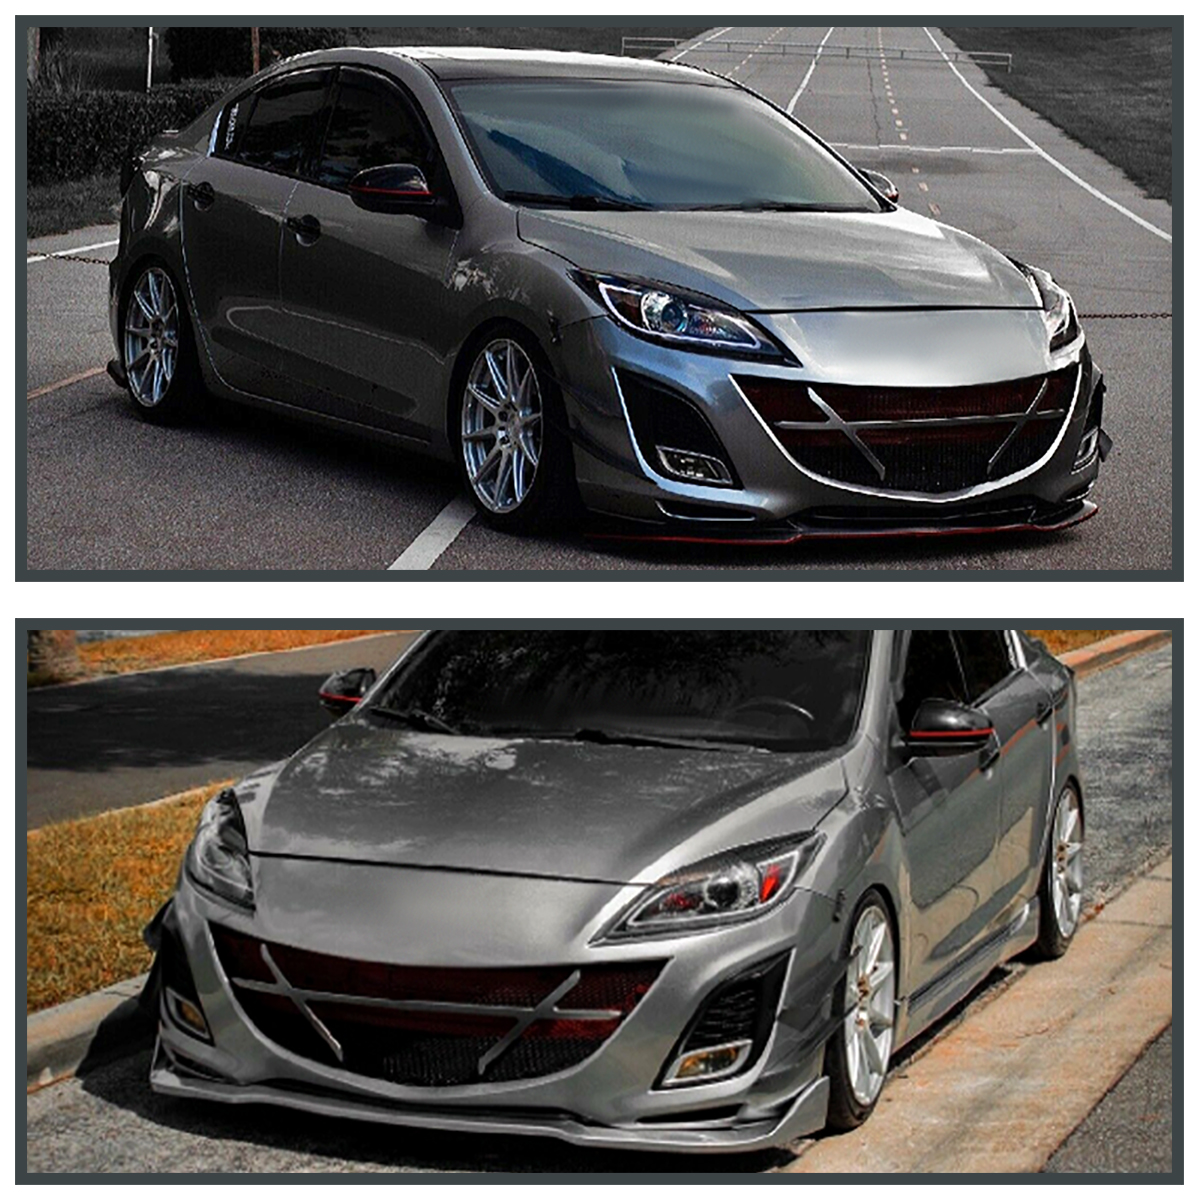 2010 2013 mazda 3 jdm black led drl strip projector headlights 2010 2013 mazda 3 jdm black led drl strip projector headlights pair leftright publicscrutiny Image collections